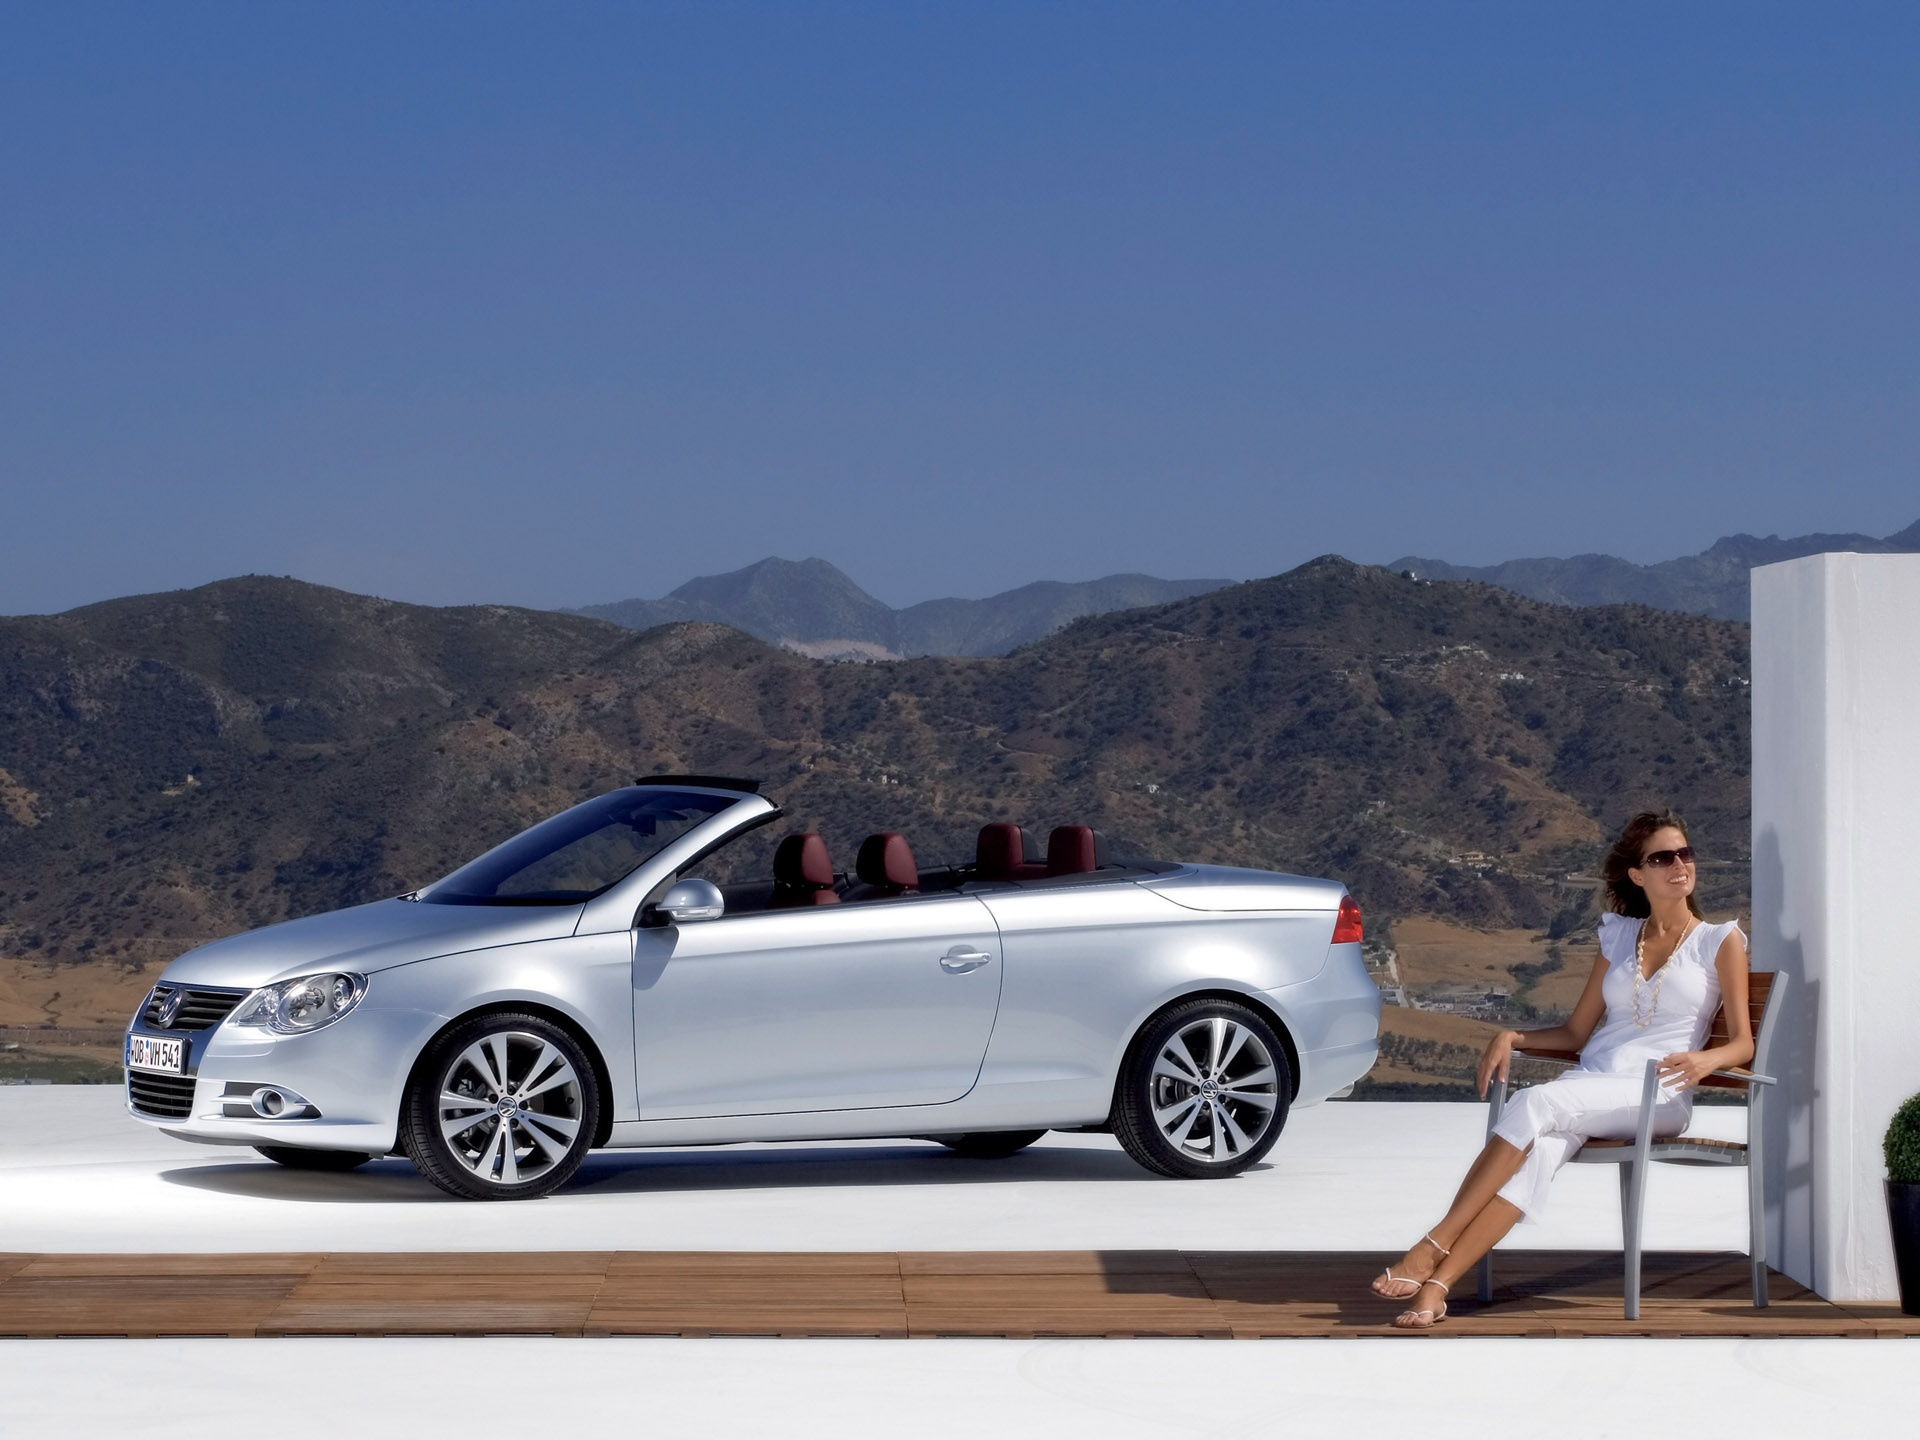 VW Eos with woman wallpapers | VW Eos with woman stock photos